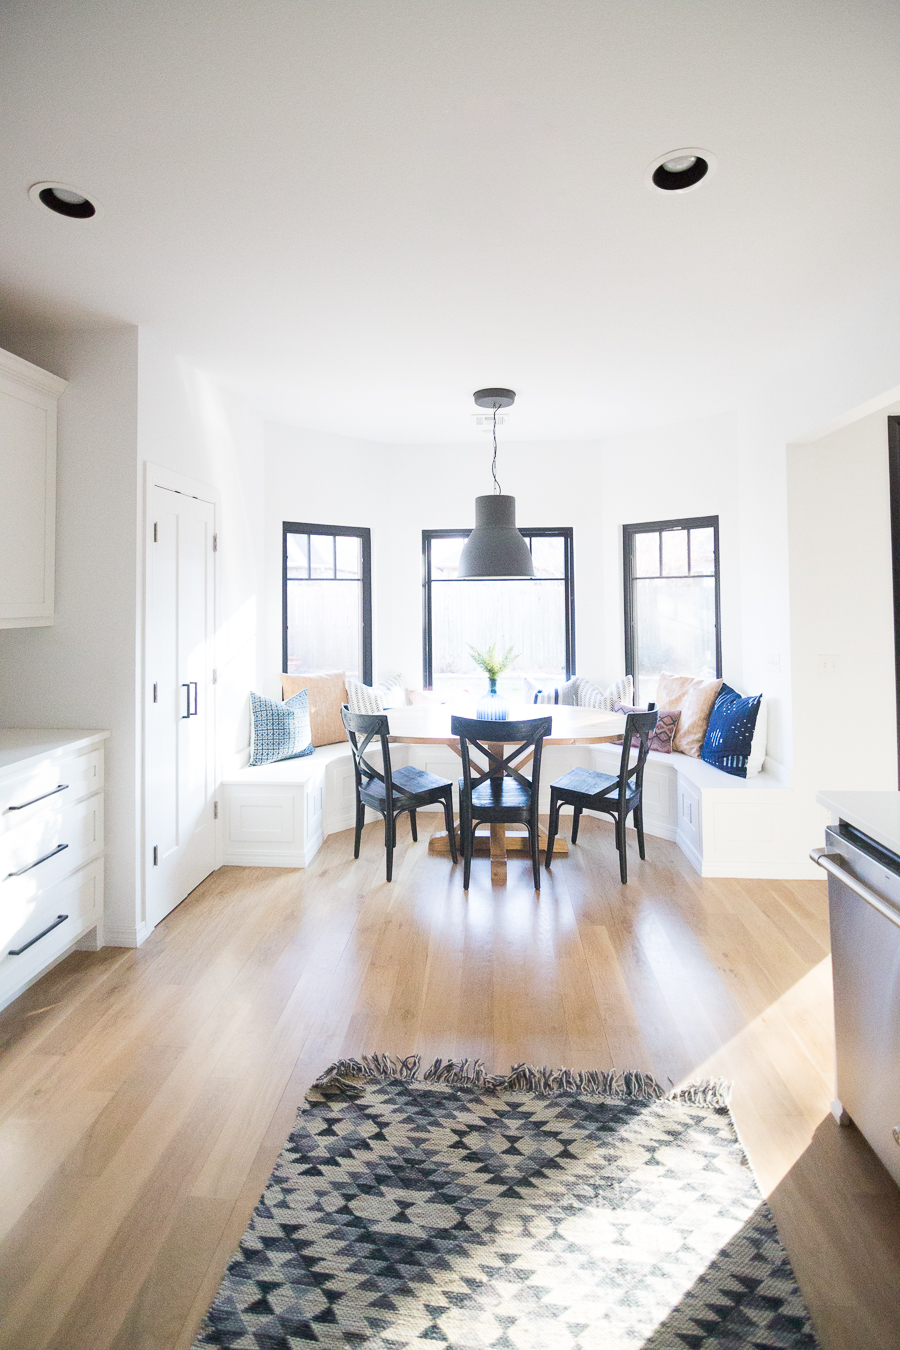 Tulsa Remodel Reveal Modern White Farmhouse with Black WIndows and Doors built in banquette window seat black pendant dining room-1